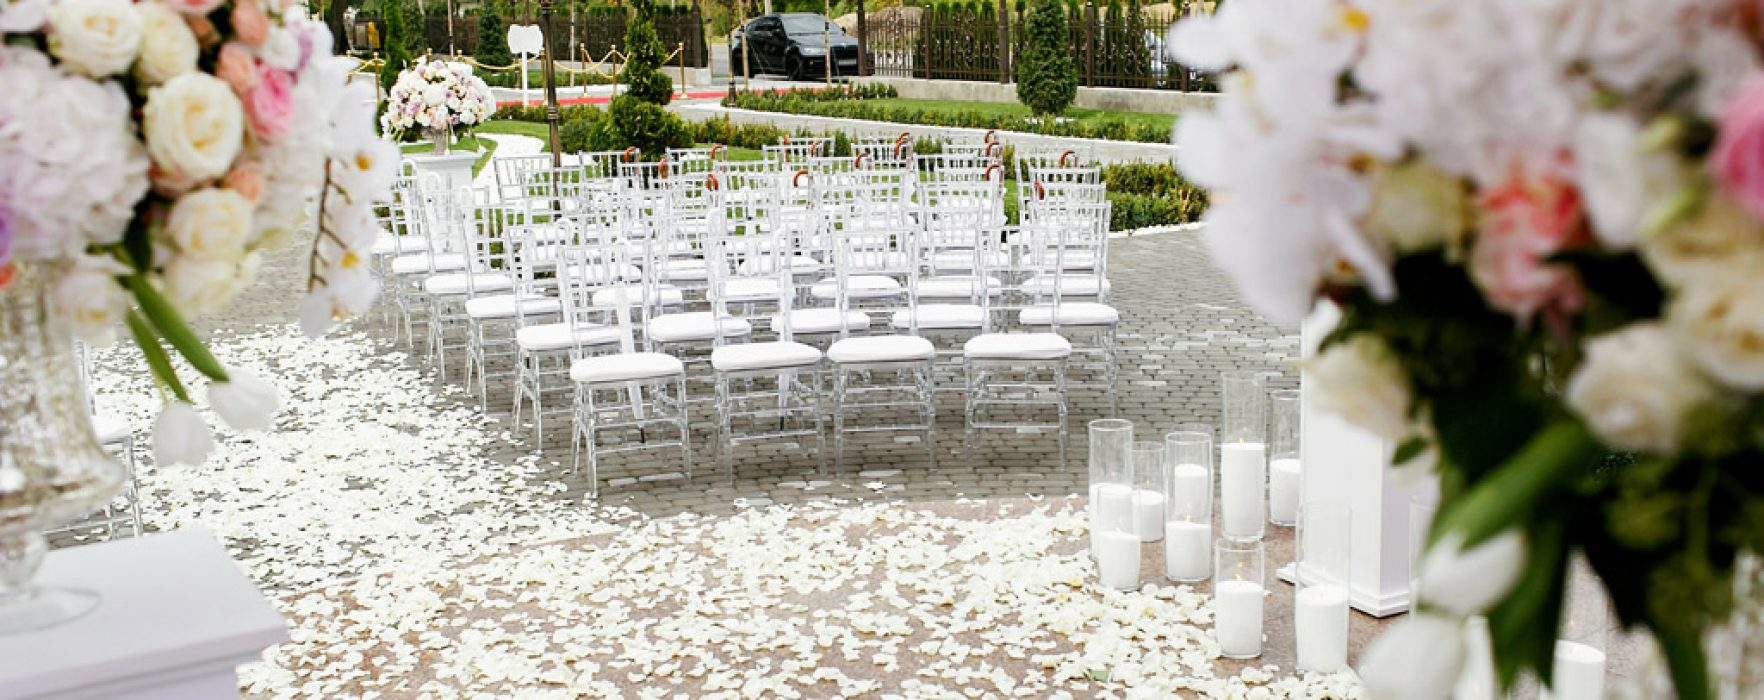 How to Host a Wedding in Your Backyard